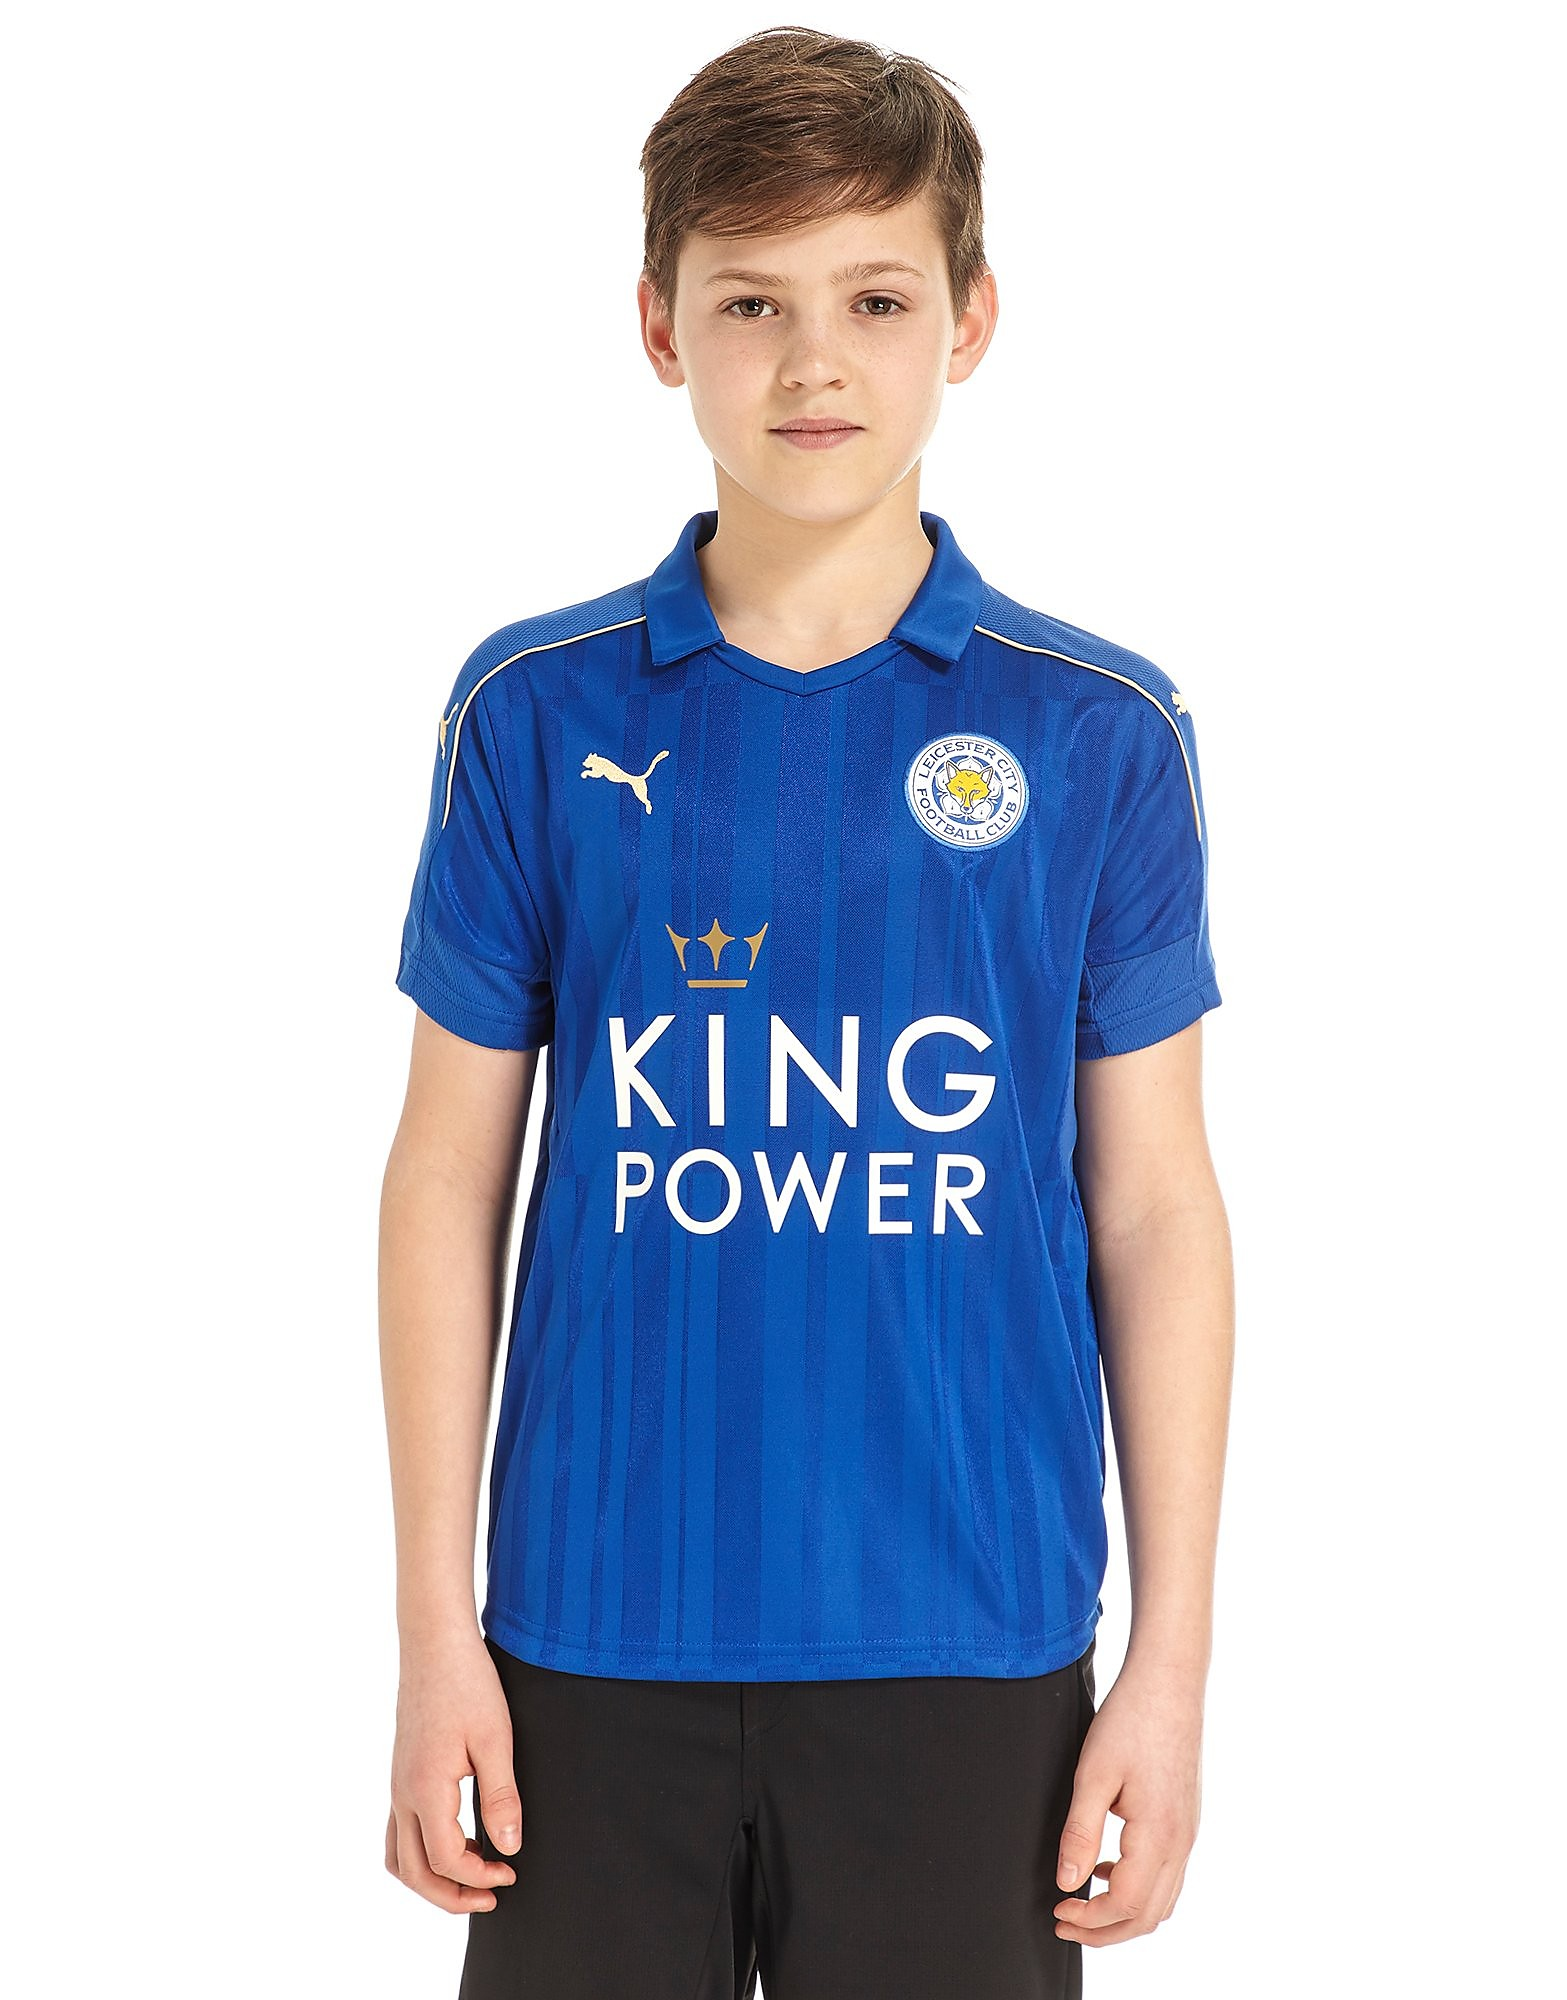 PUMA Leicester City FC 2016/17 Home Shirt Junior